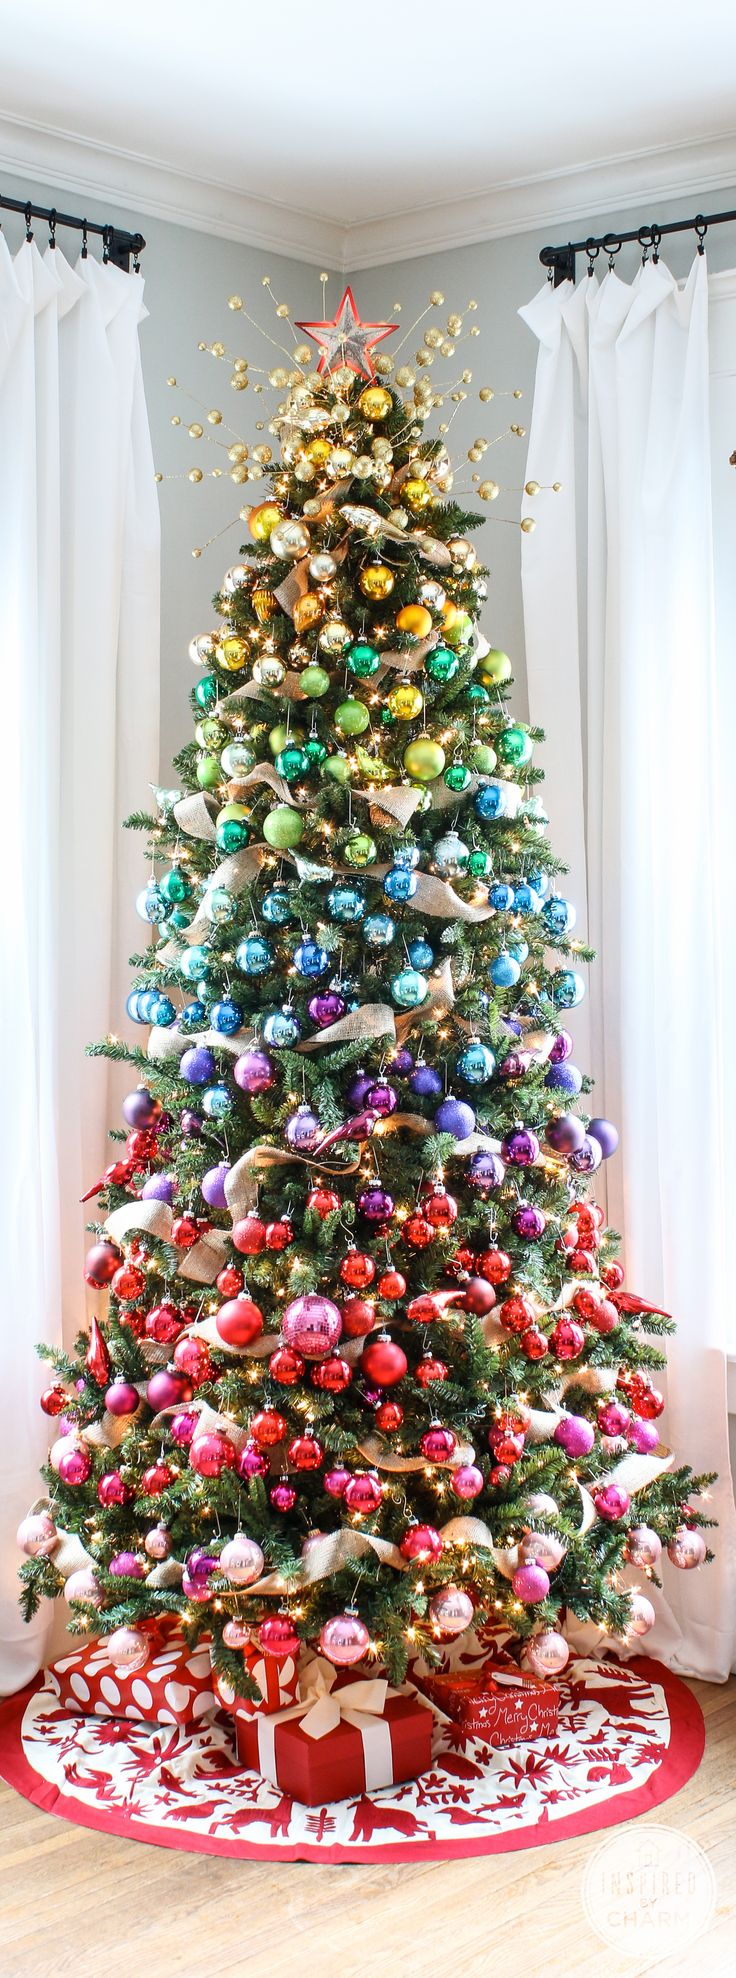 the-most-colorful-and-sweet-christmas-trees-and-decorations-you-have-ever-seen-homesthetics-2